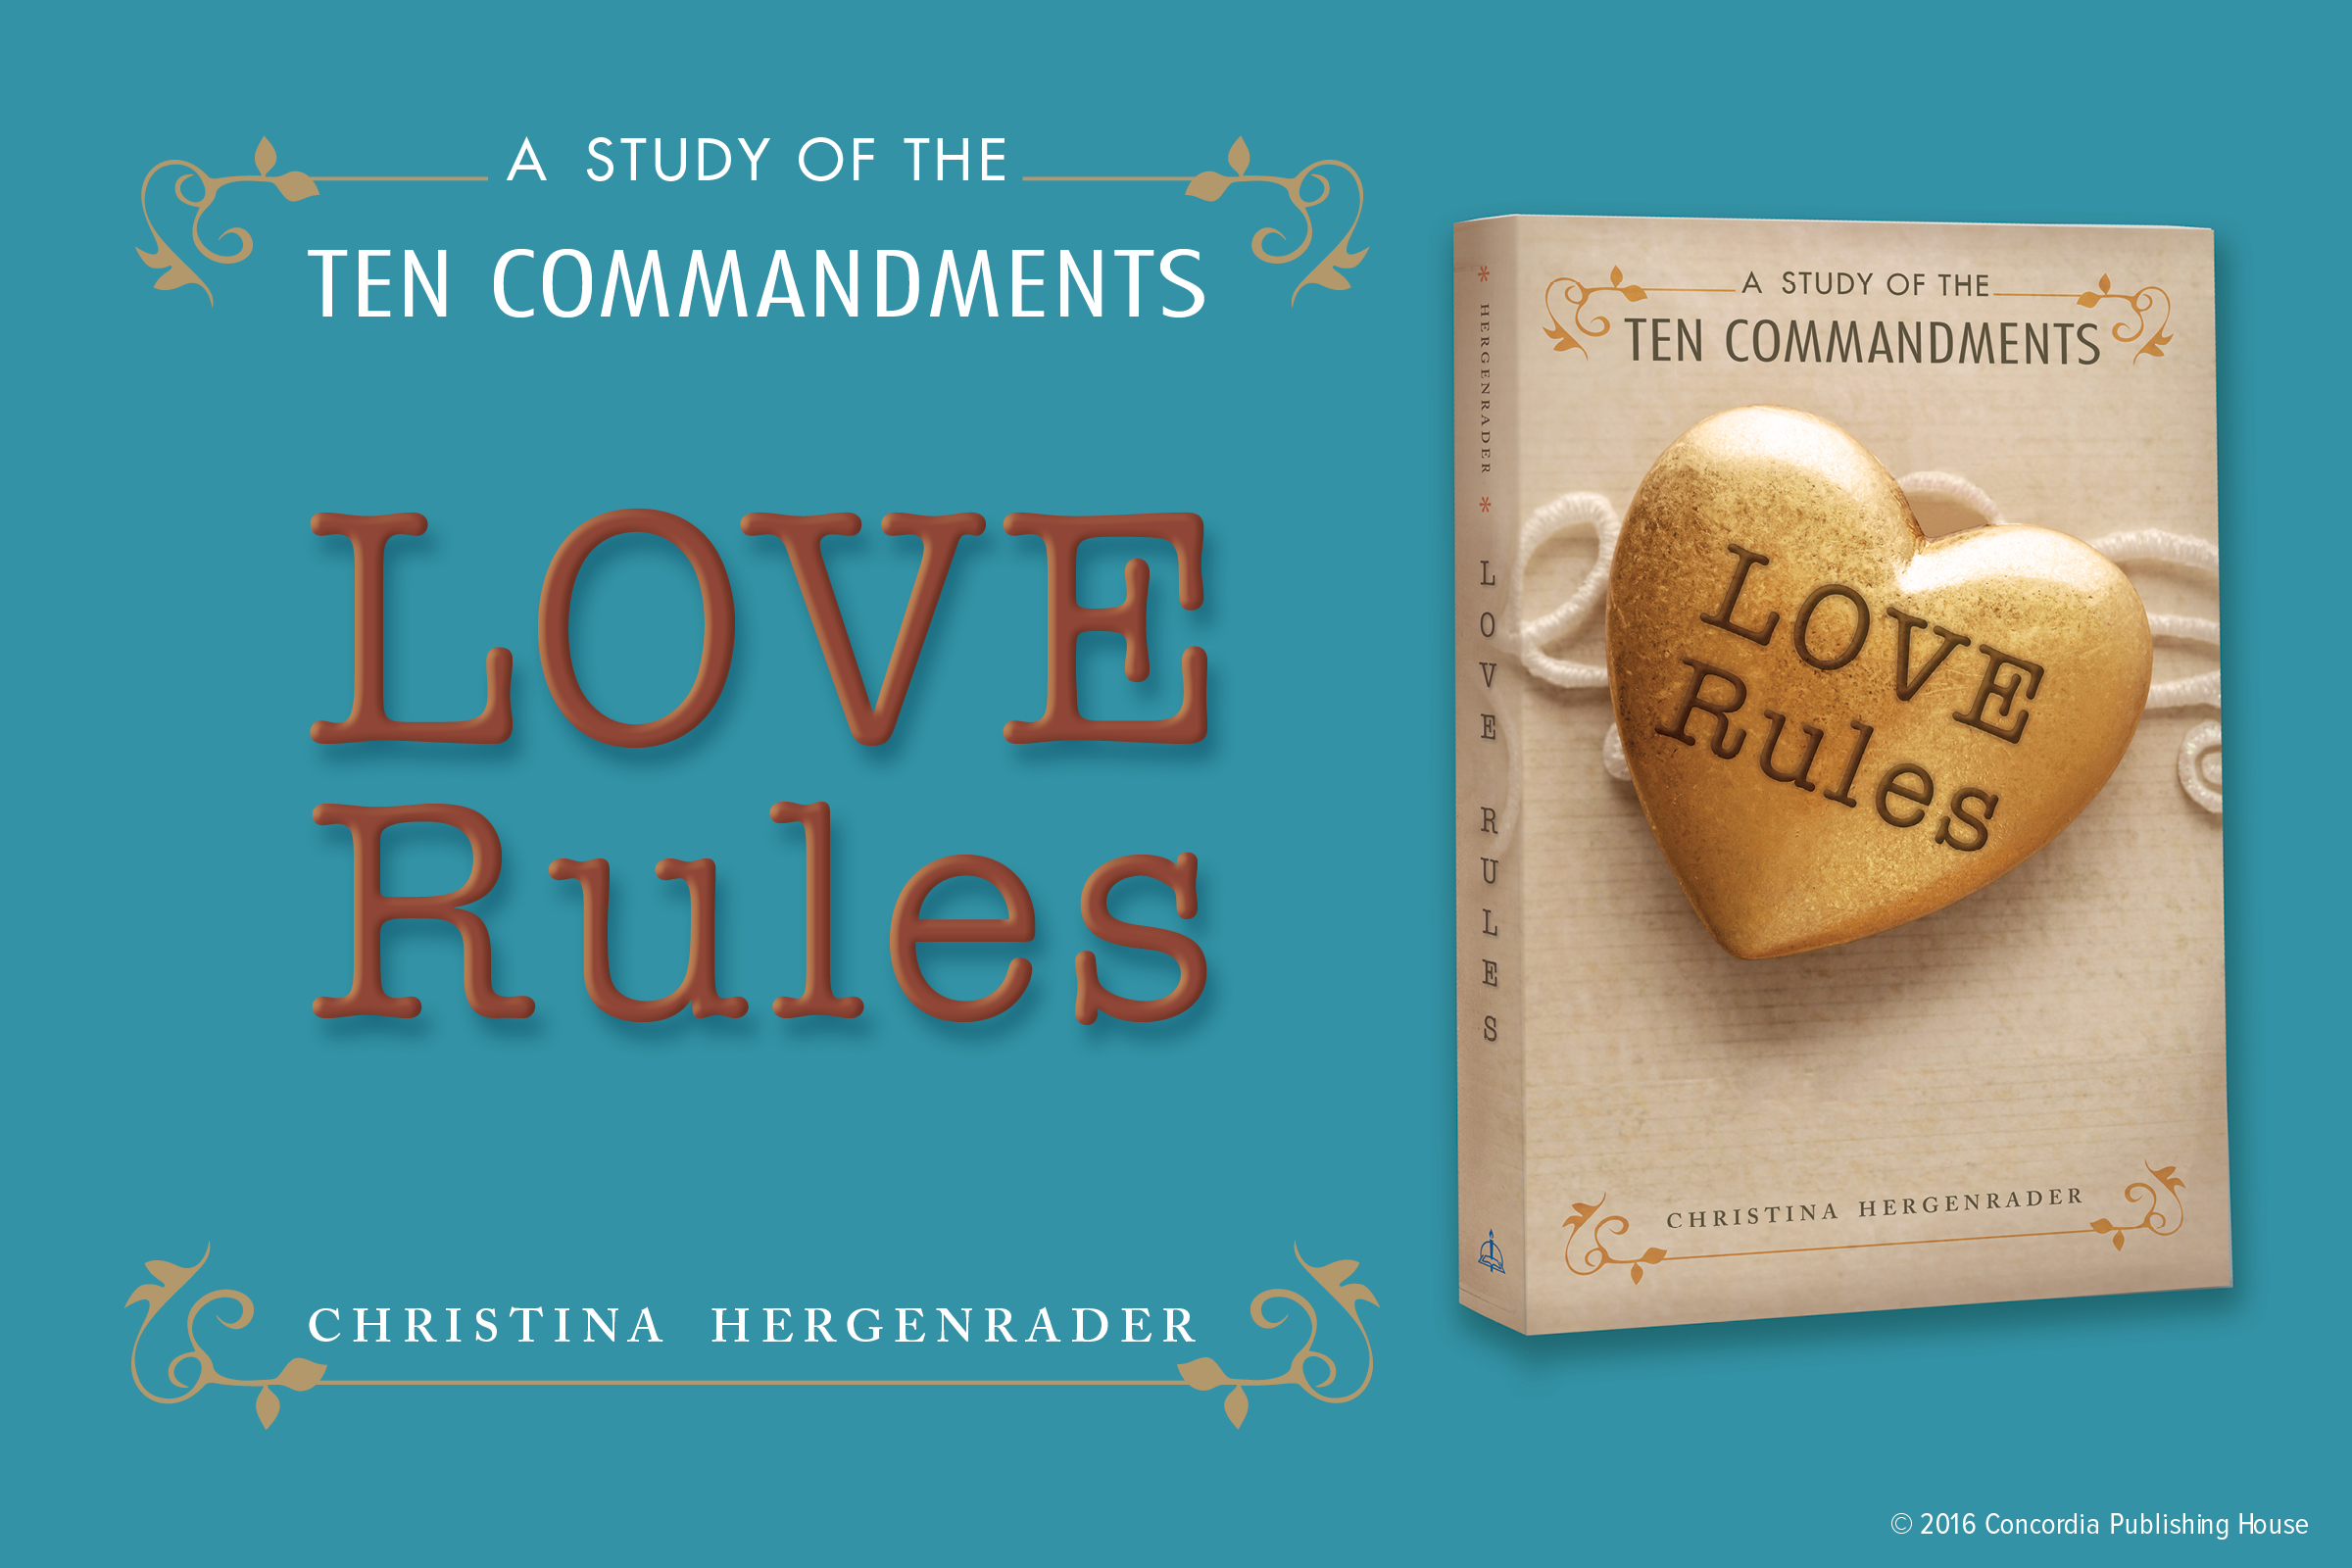 Youth devotions on the ten commandments 10 commandments bookmark array love rules a study of the ten commandments rh cph org free promotional fandeluxe Image collections